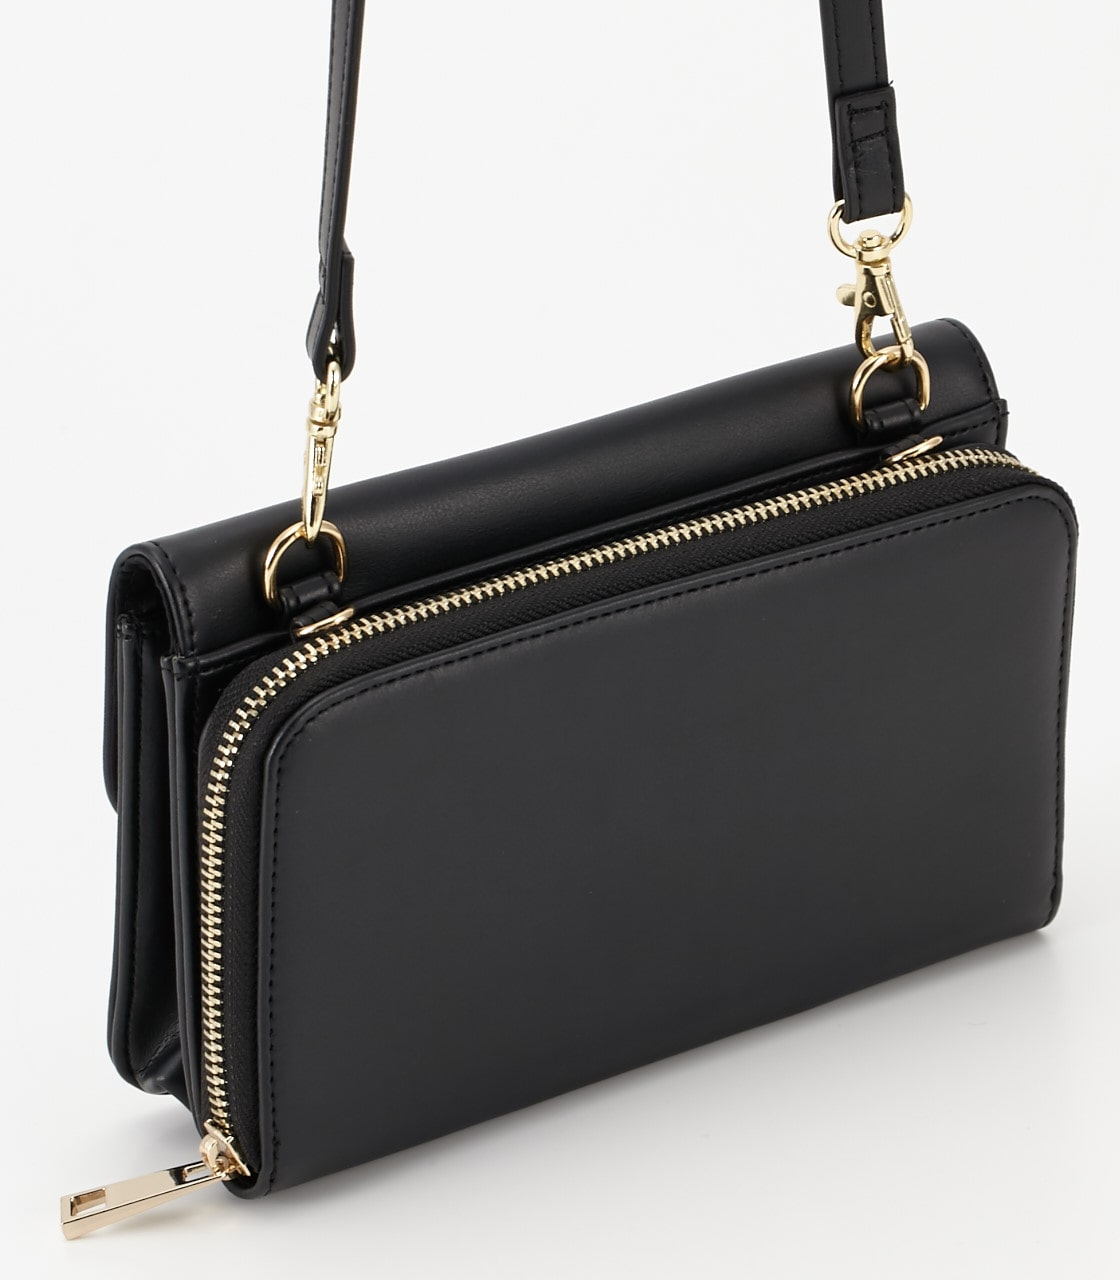 【AZUL BY MOUSSY】サークルリングウォレットバッグ 詳細画像 BLK 3